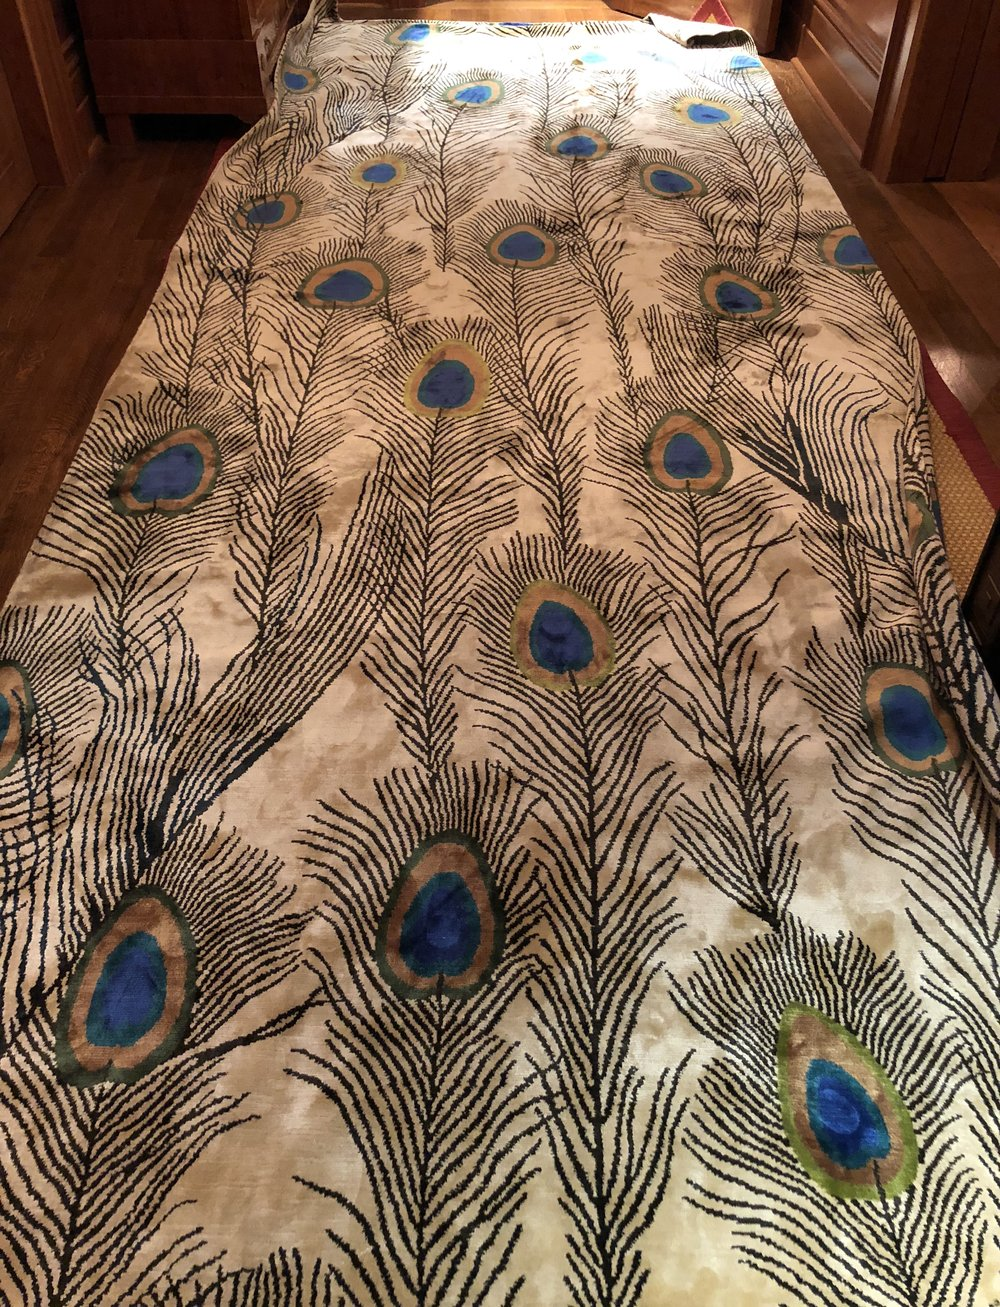 CandiceKayeDesign_CustomRugs_Peacock.jpg